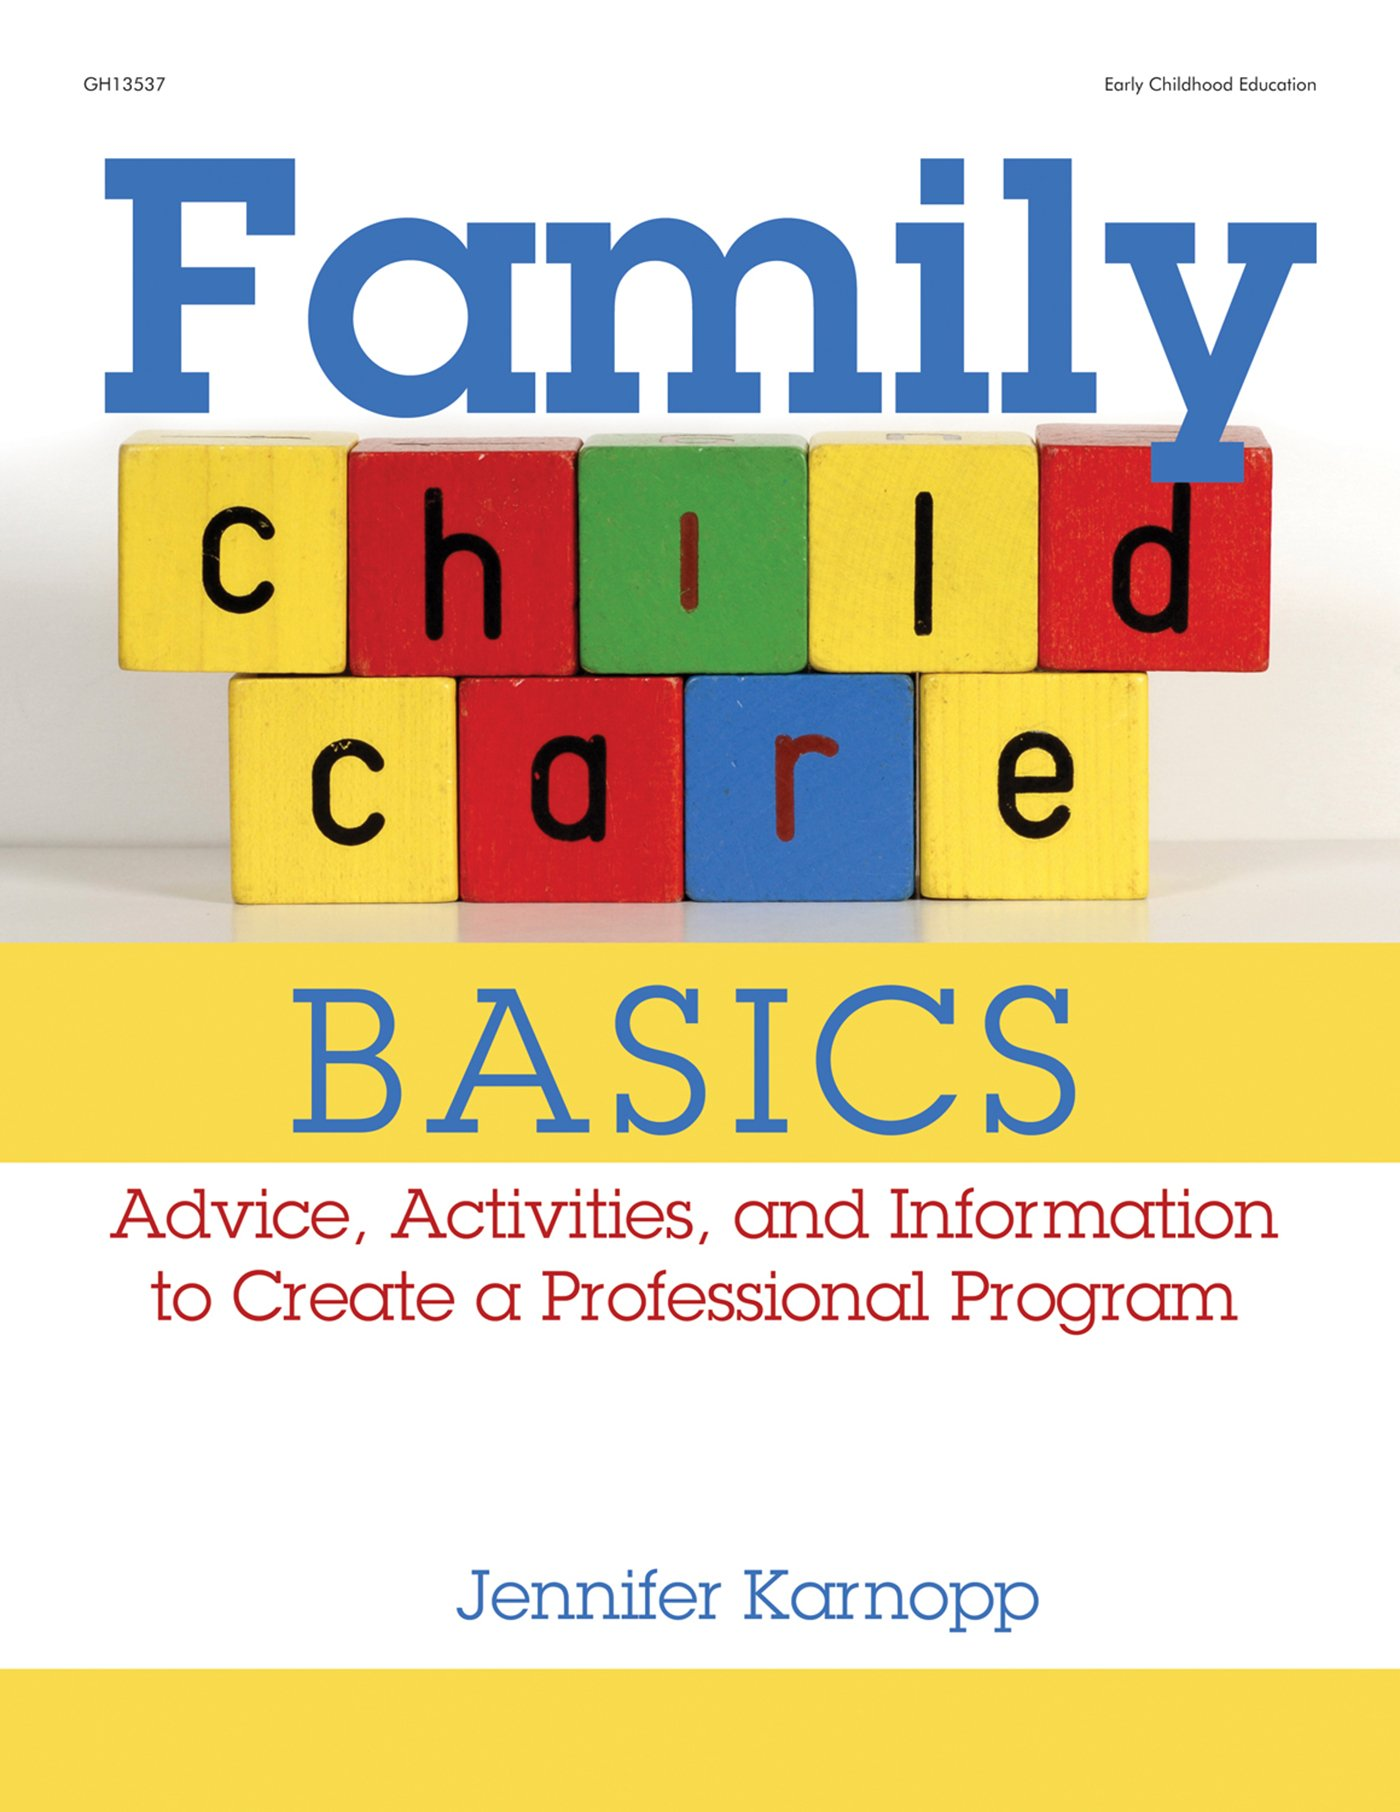 Family Child Care Basics: Advice, Activities, and Information to Create a Professional Program